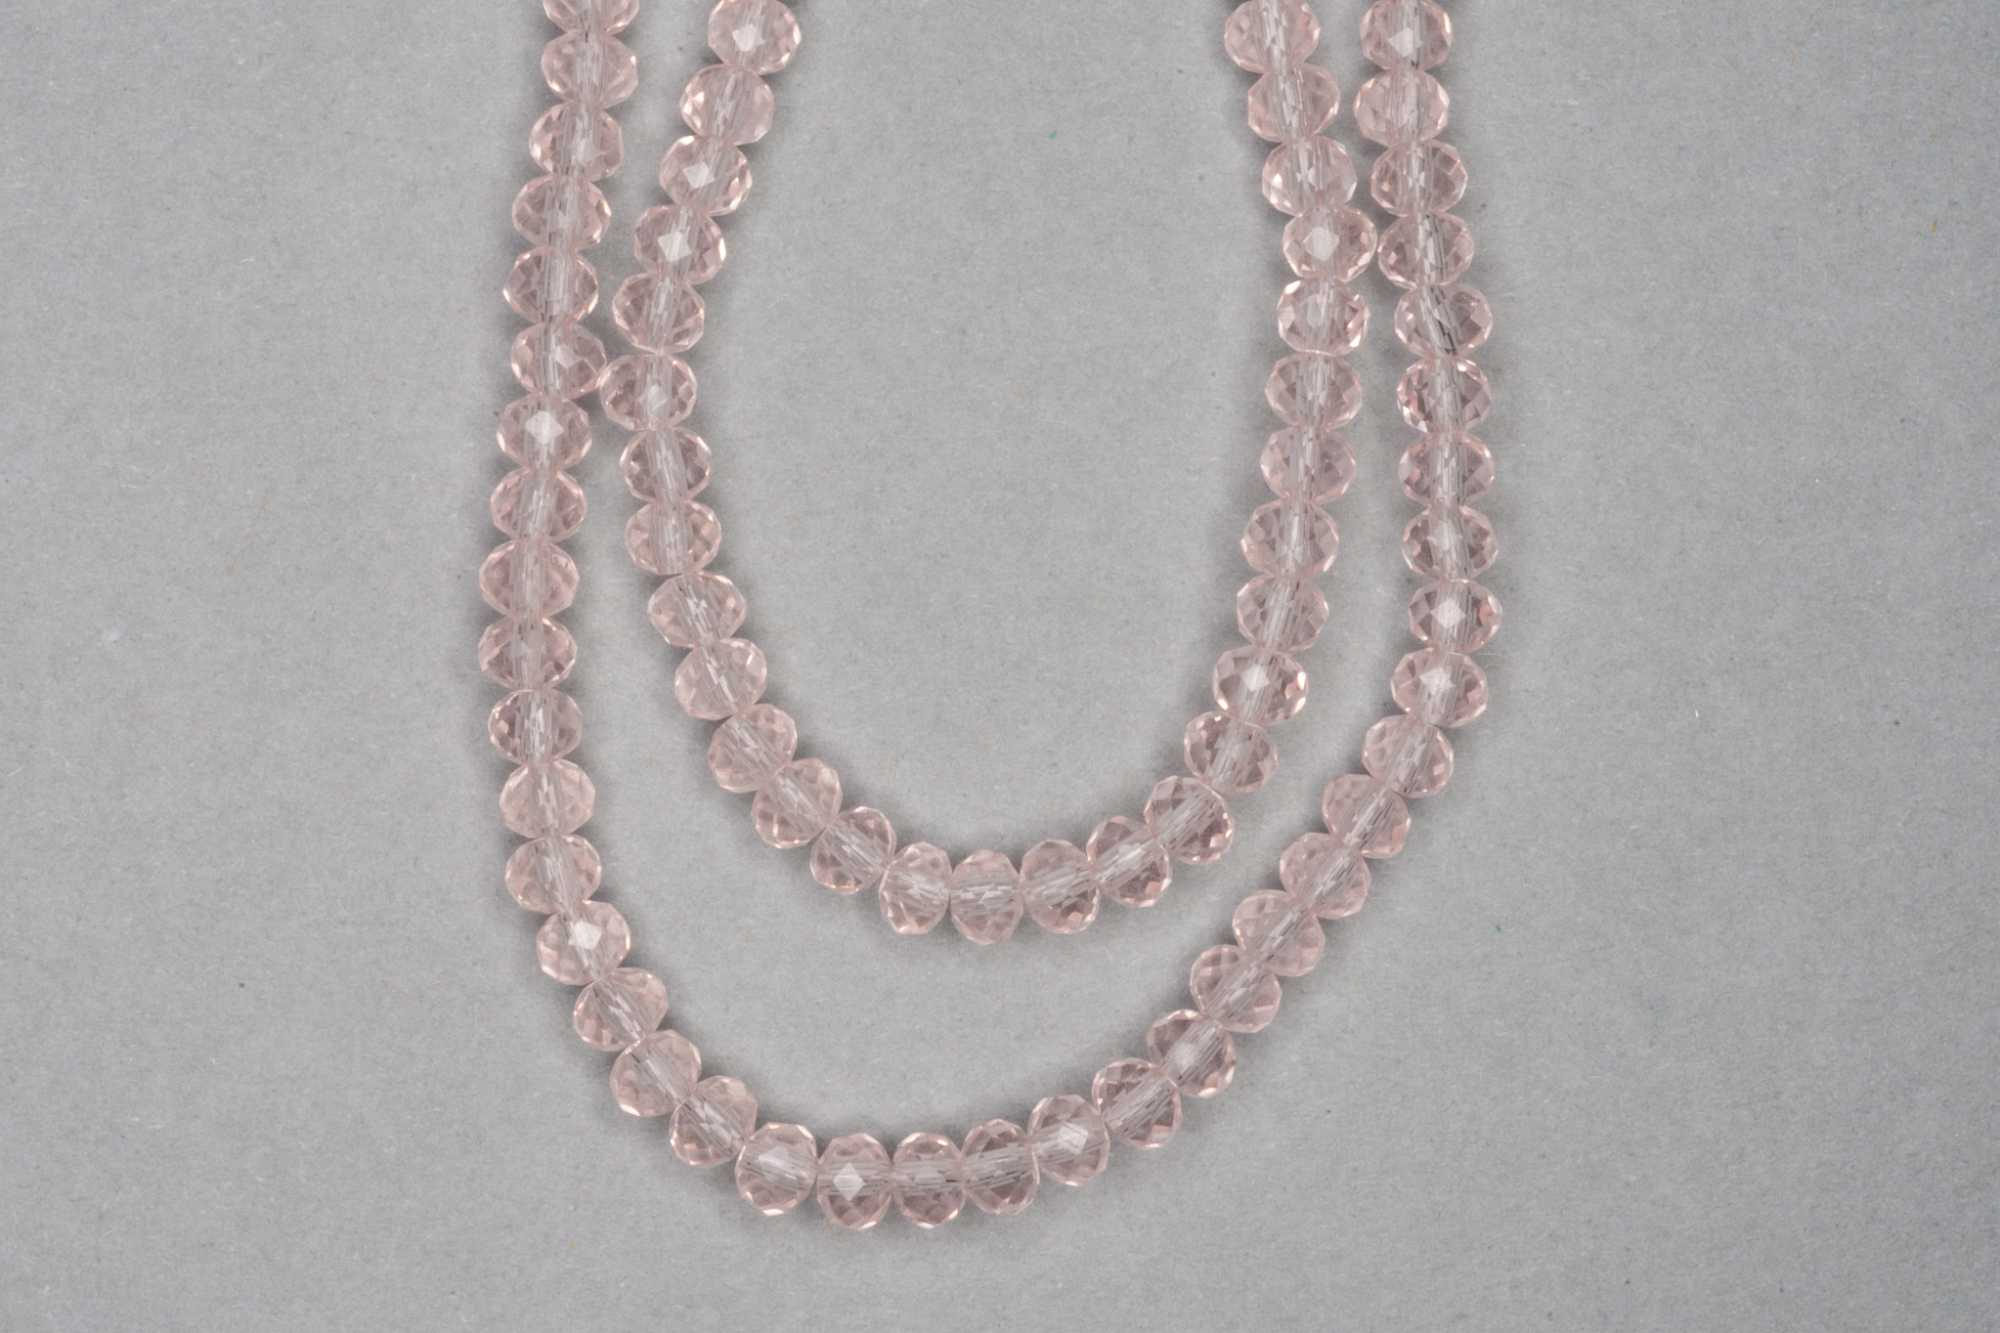 Light Flesh Pink Faceted Glass Beads